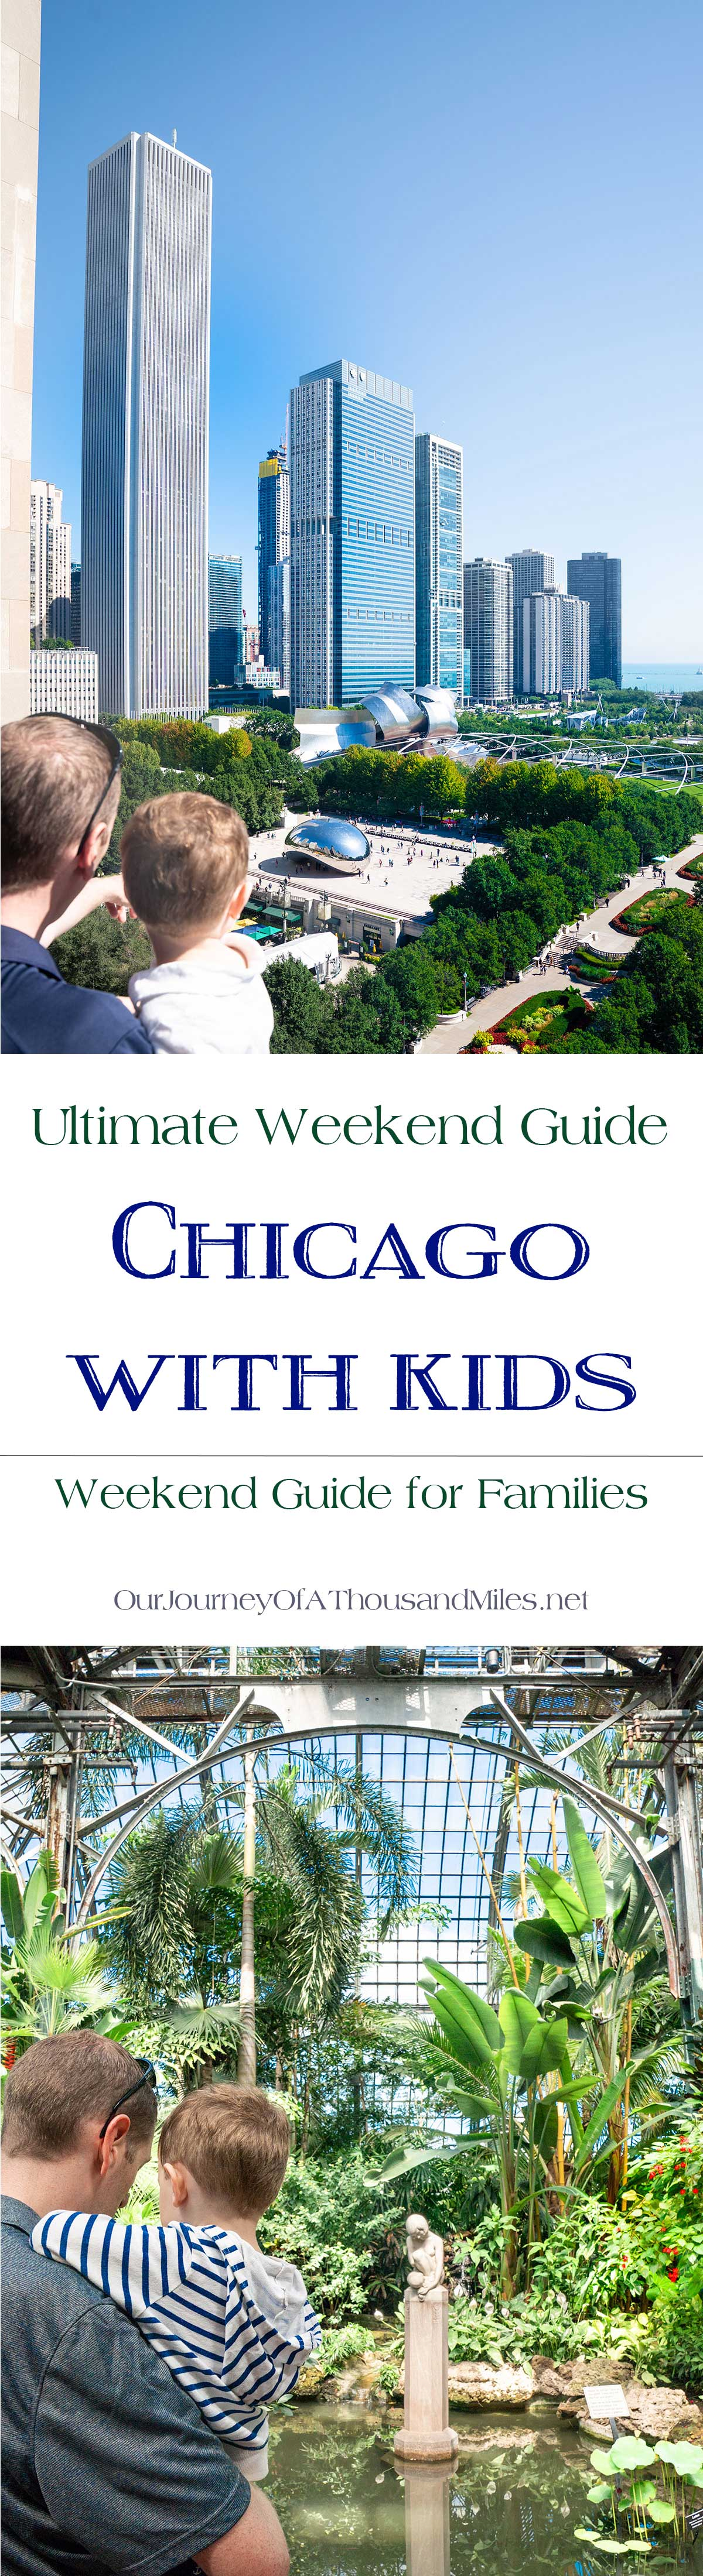 Ultimate-Weekend-Guide-to-Chicago-with-Kids